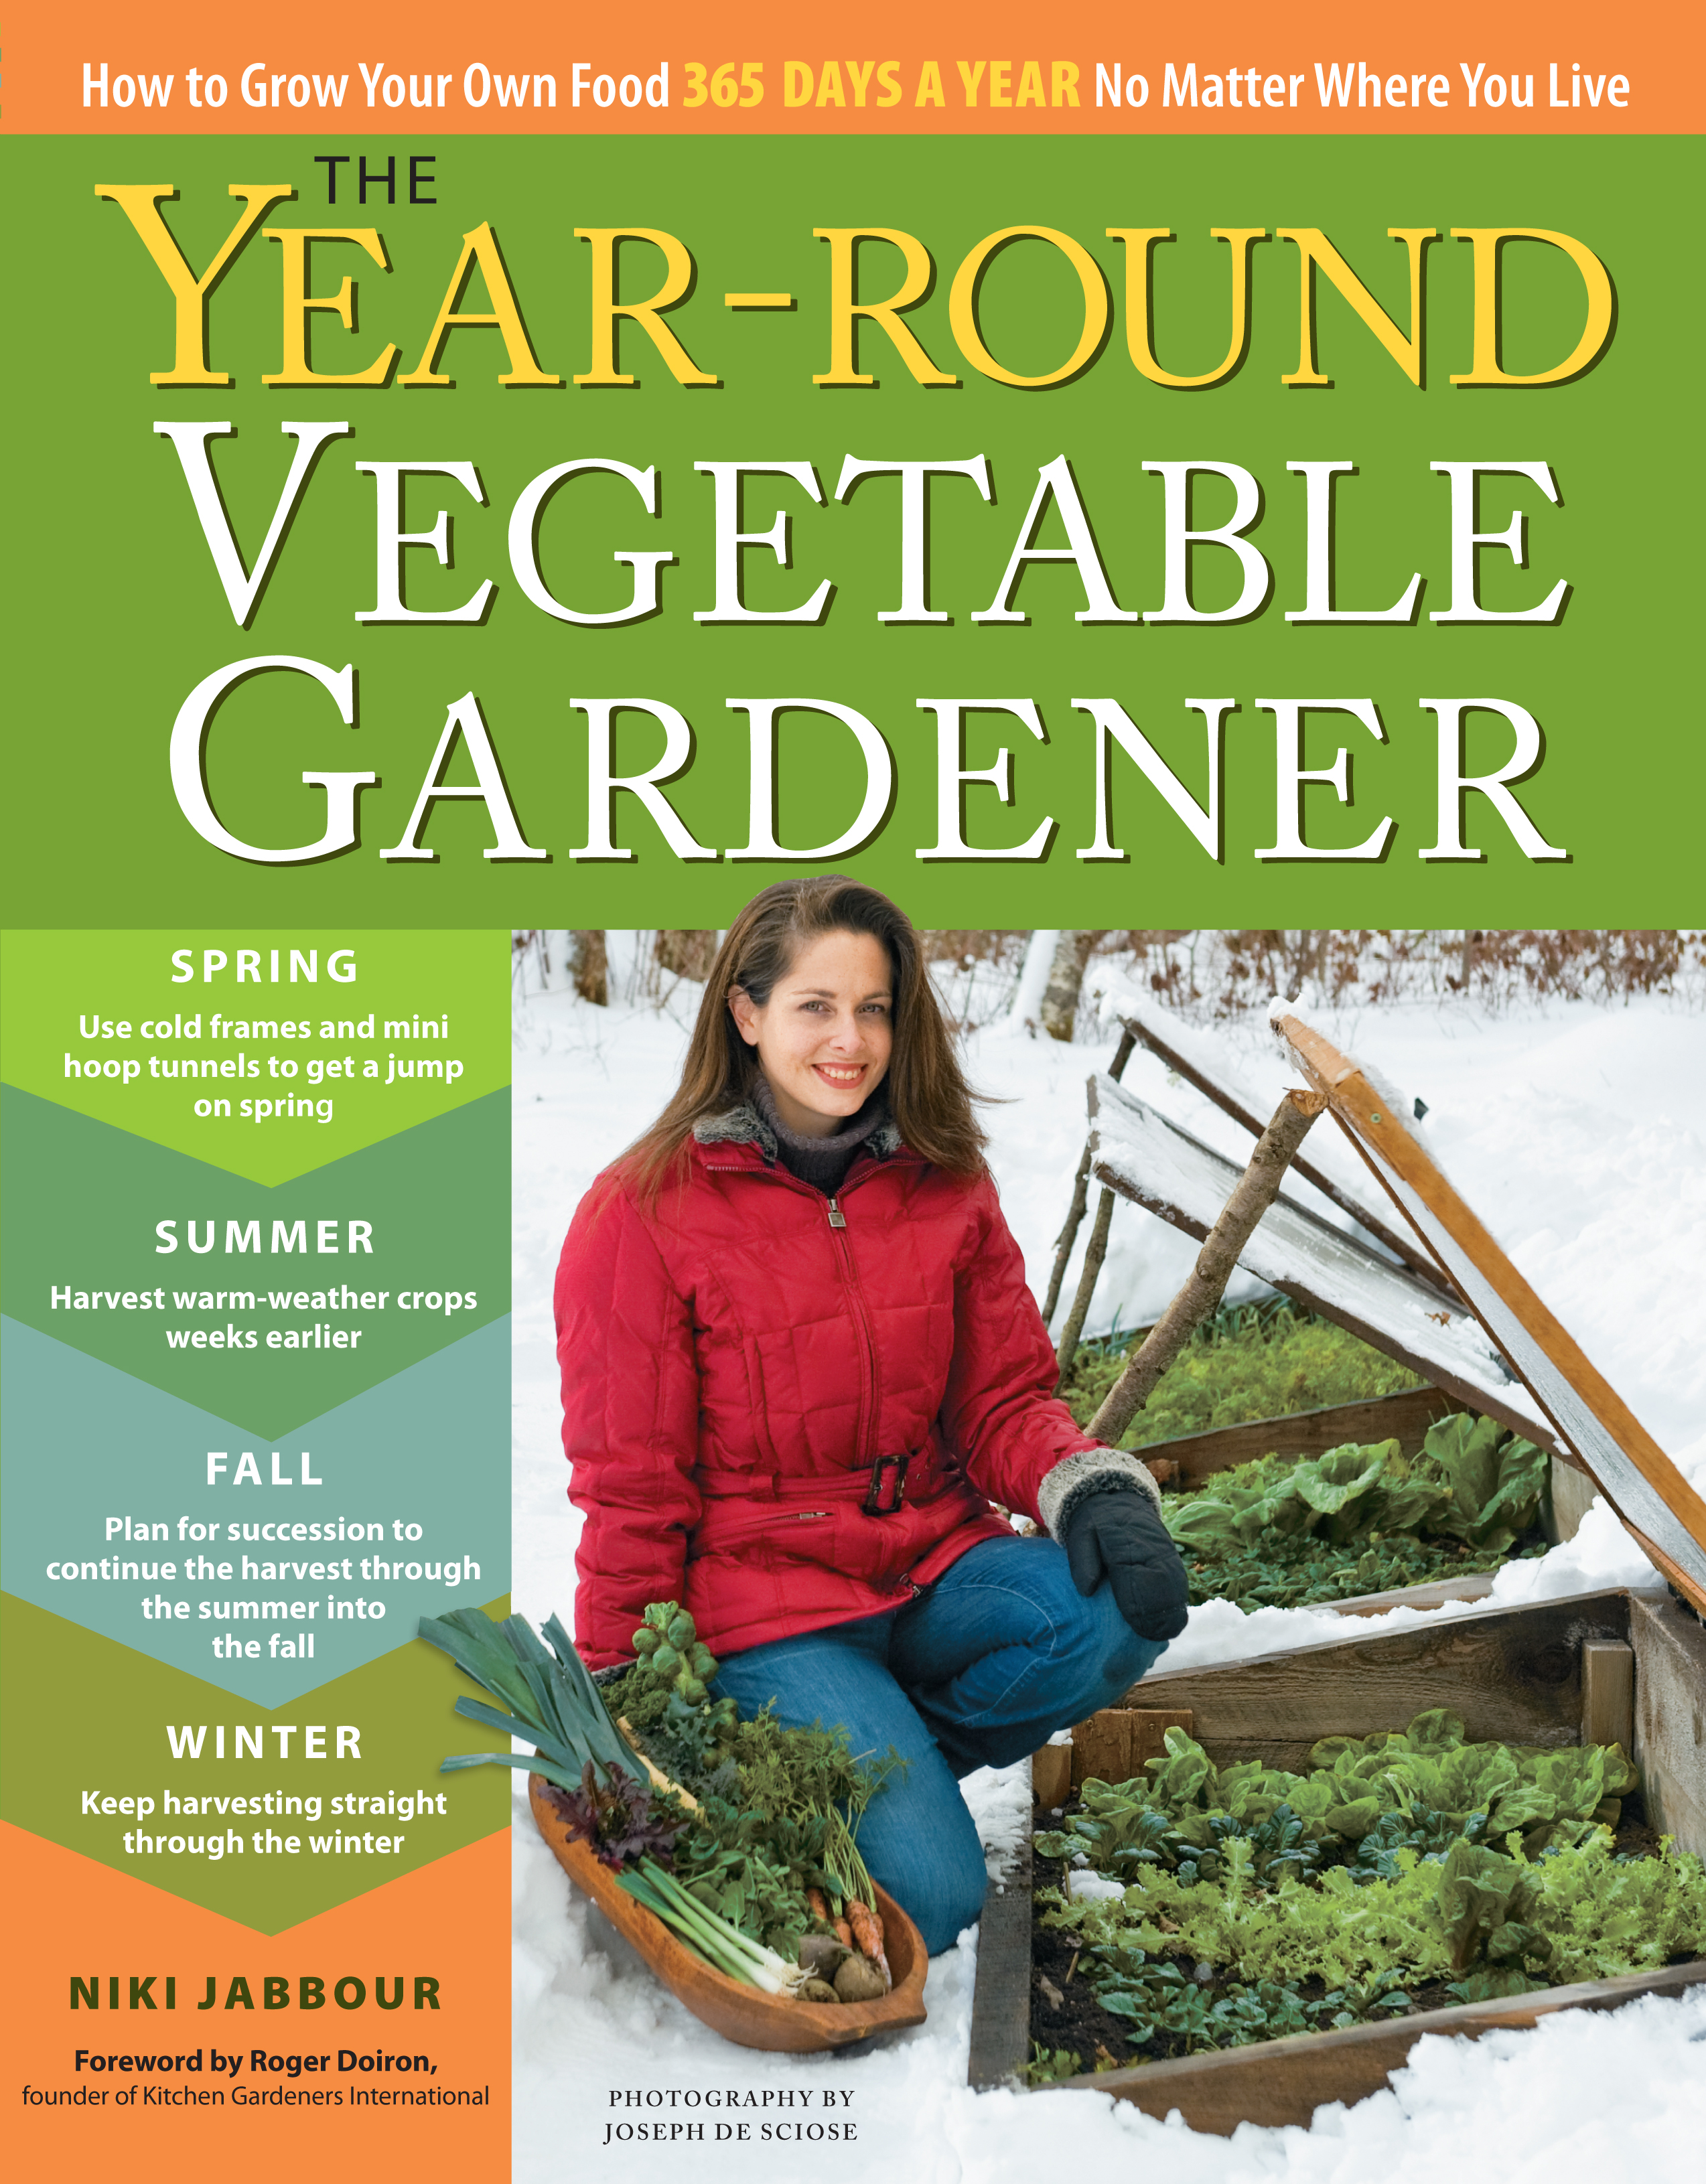 Cover Image of The Year-Round Vegetable Gardener